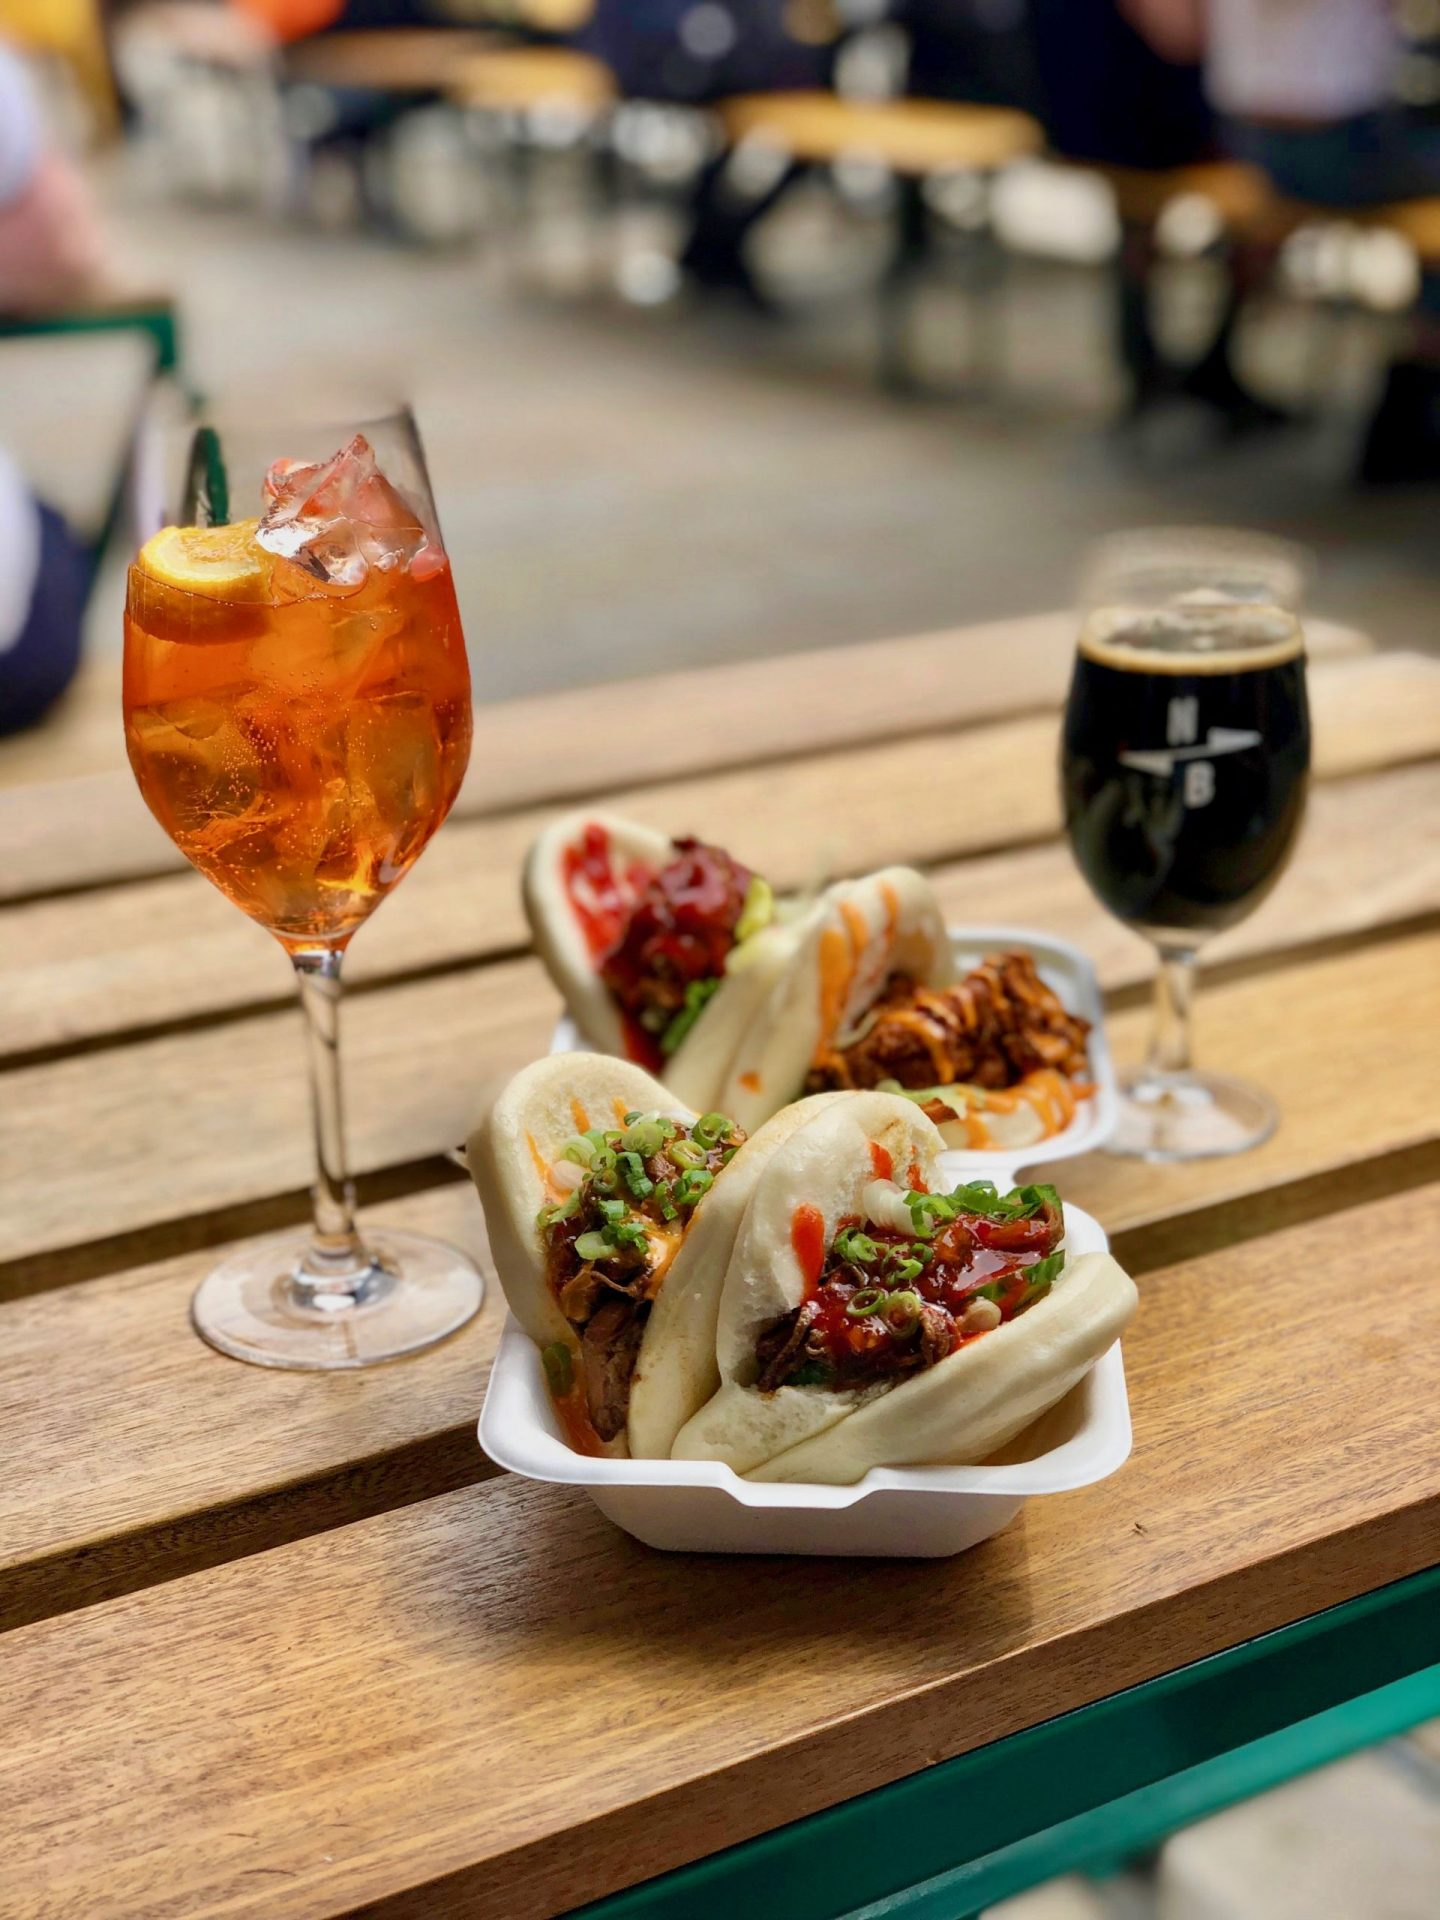 things to do in leeds city centre - bao buns on a takeaway plate on a wooden table outside, with an aperol spritz and a beer alongside